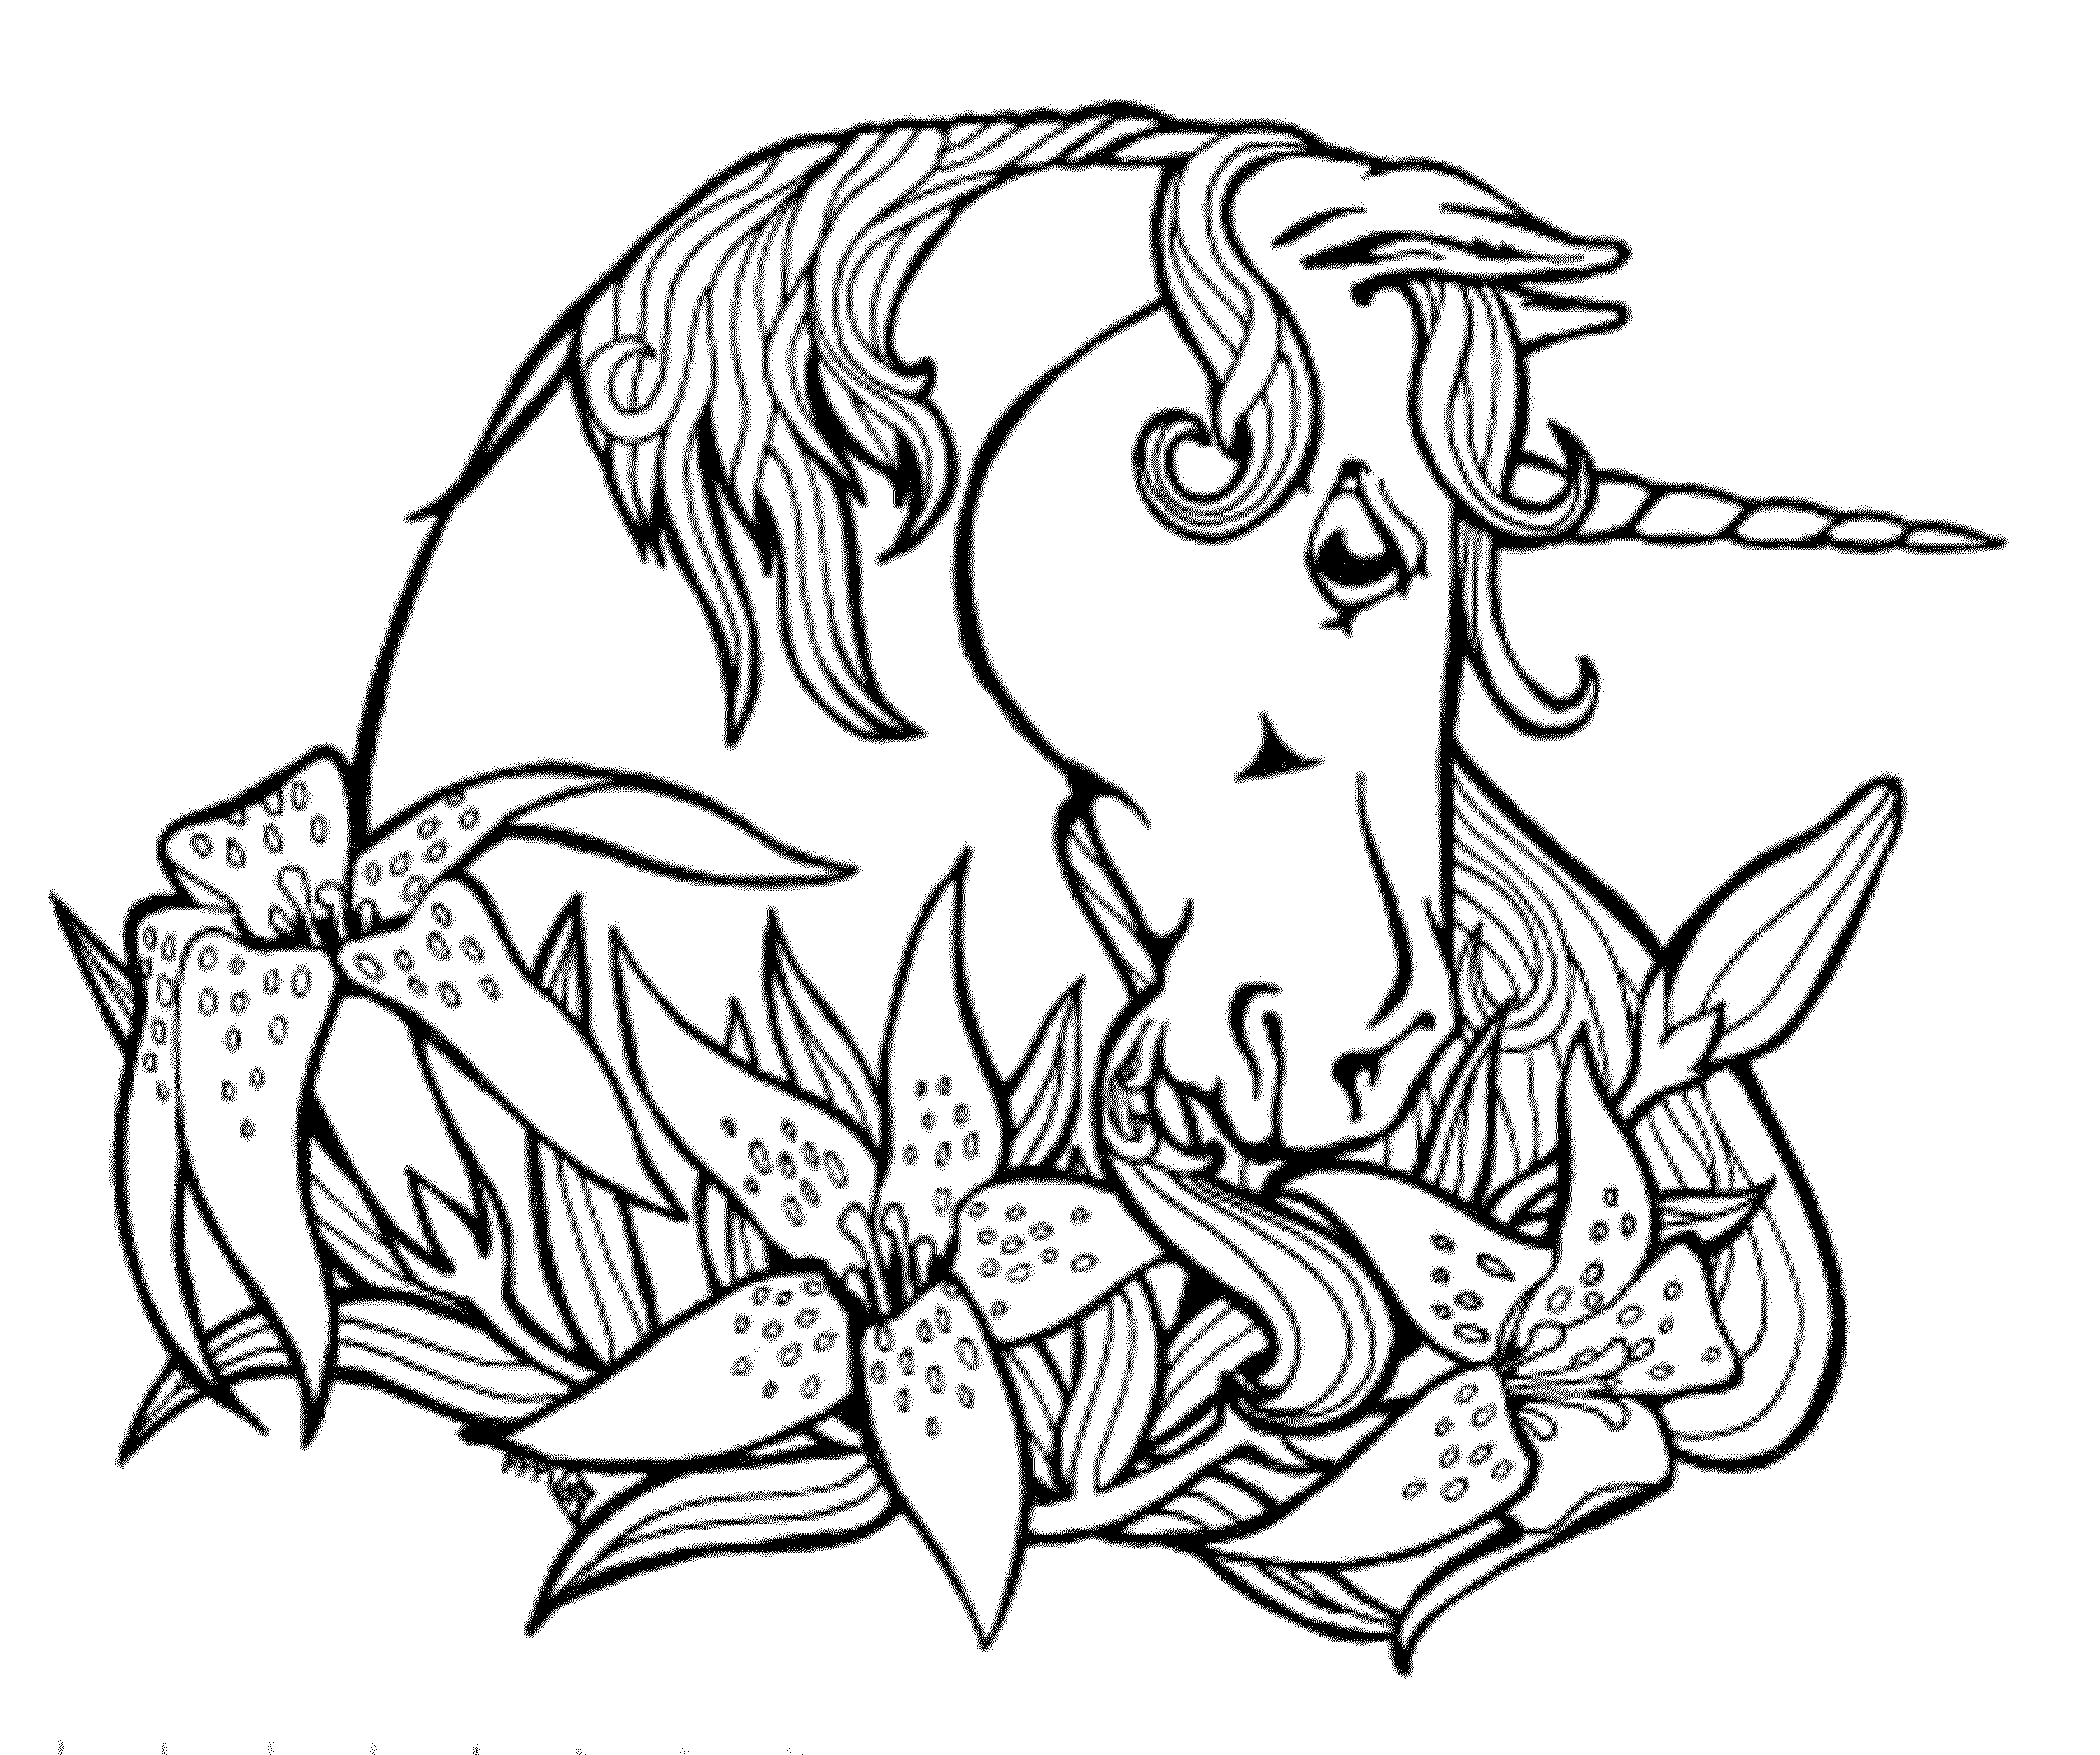 coloring worksheets unicorn unicorn coloring pages to download and print for free worksheets unicorn coloring